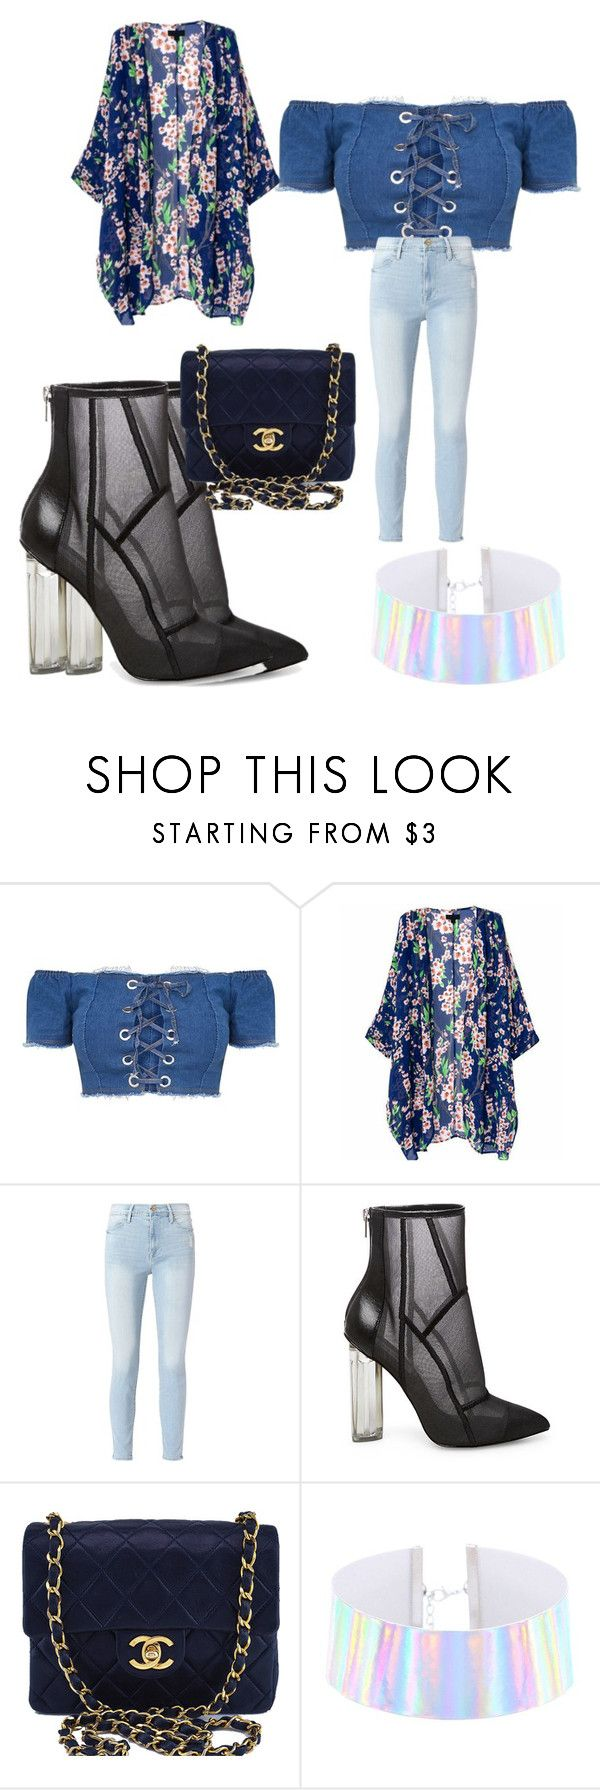 """""""Untitled #251"""" by adrianna-nicole-smith ❤ liked on Polyvore featuring Frame, Steve Madden and Chanel"""